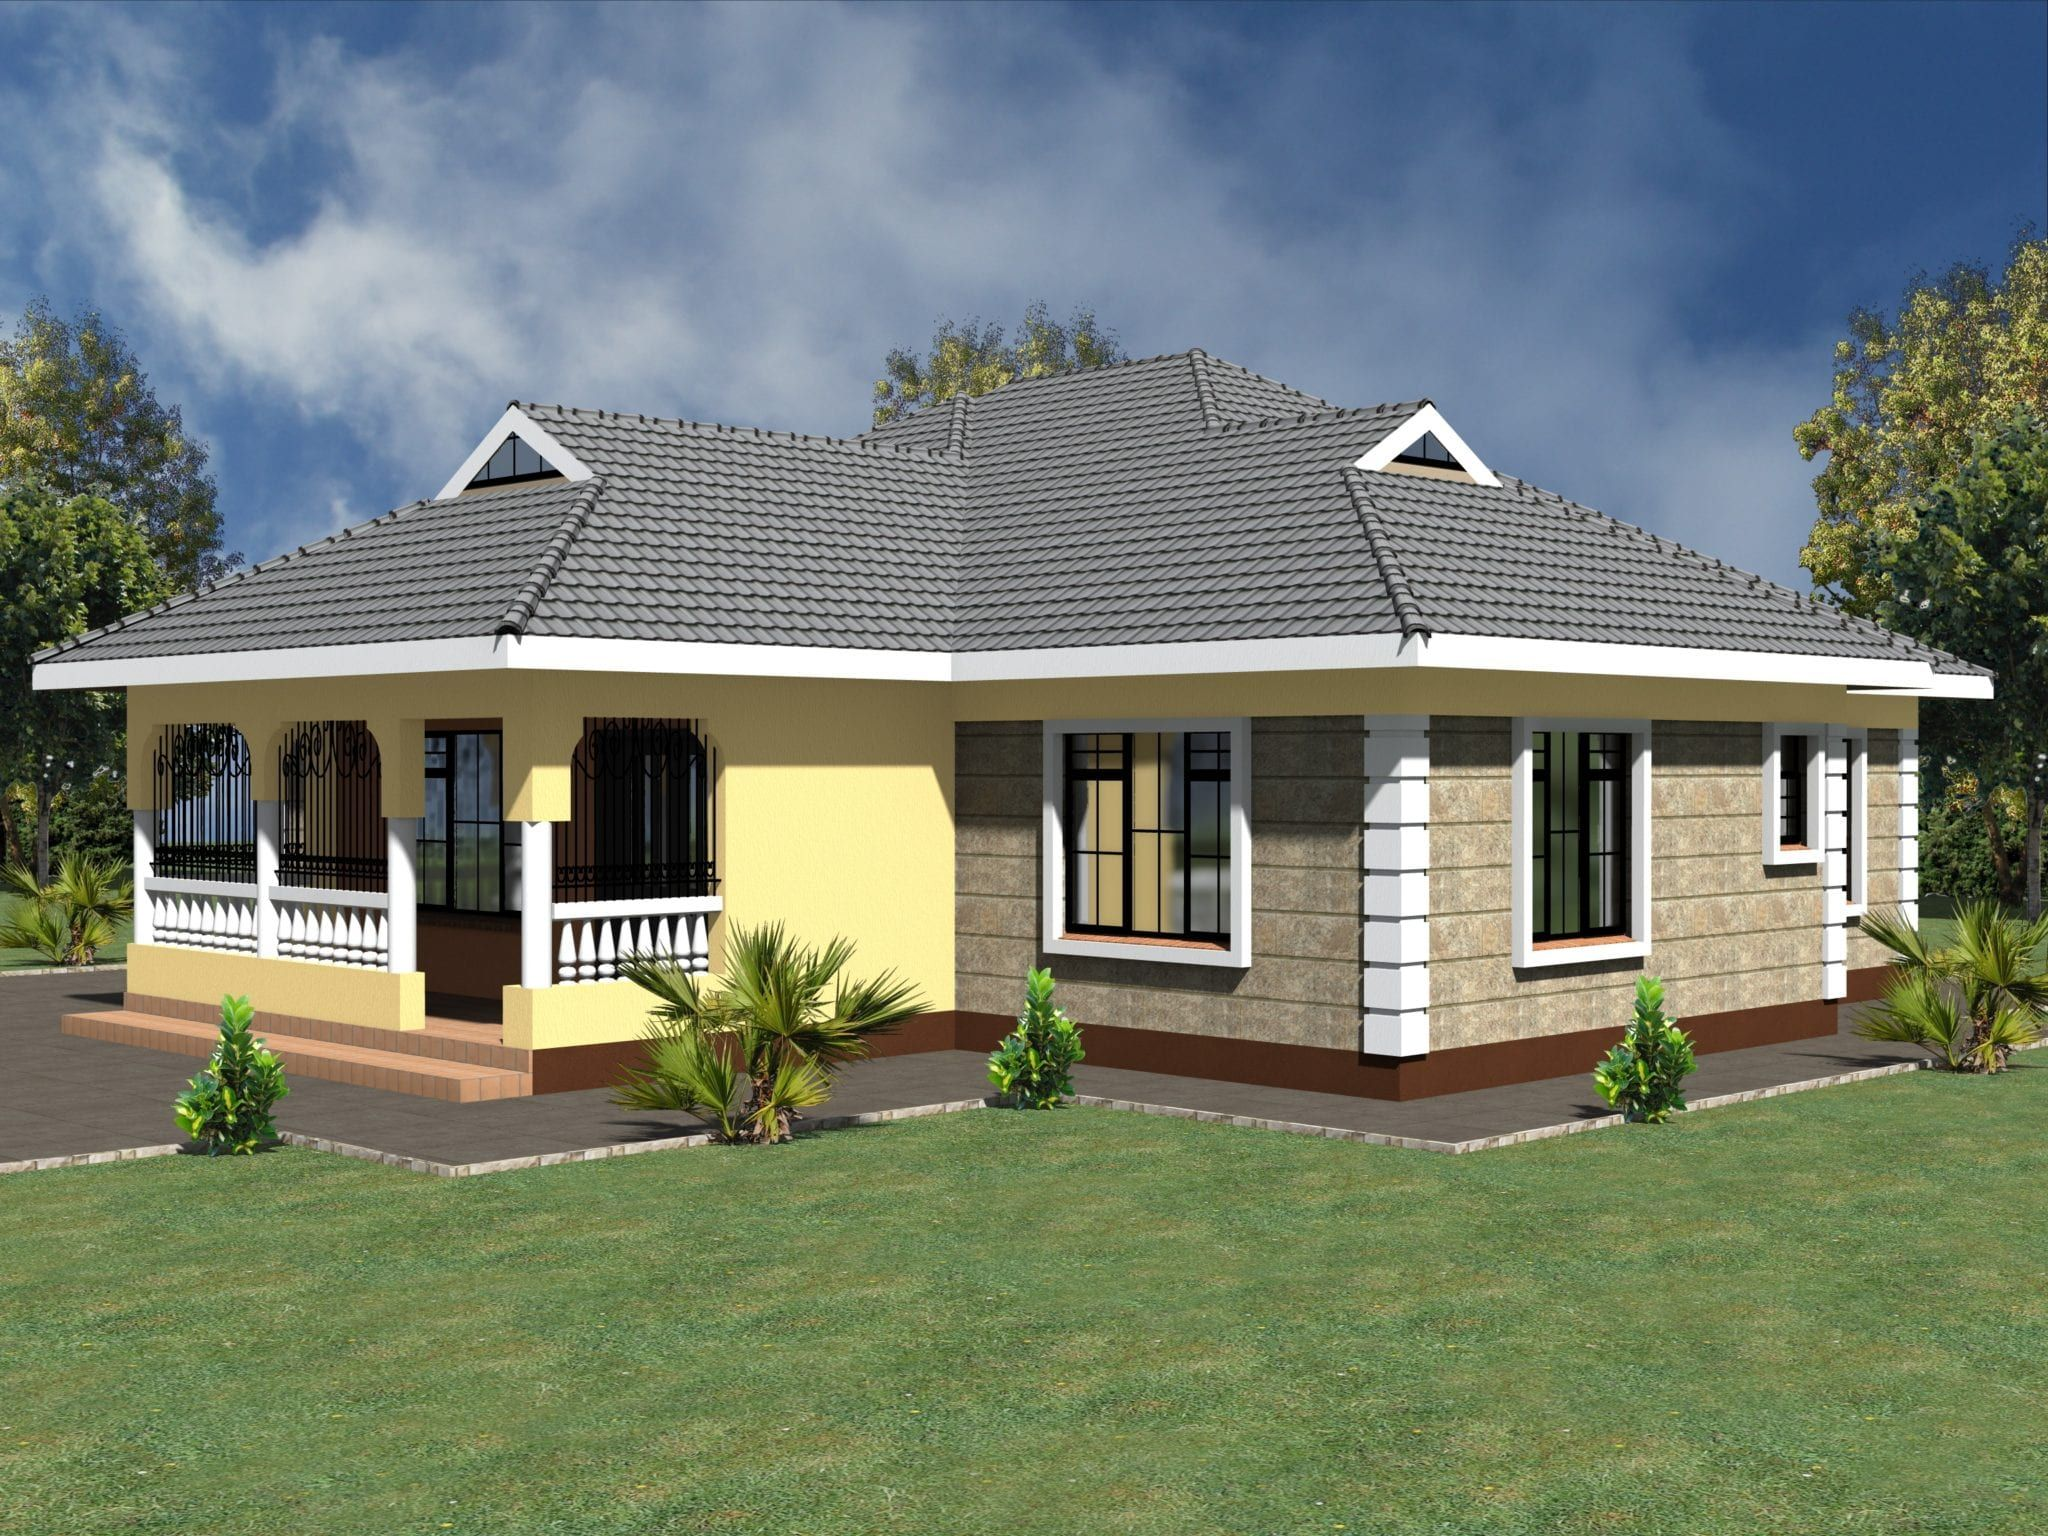 Simple 3 Bedroom House Plans Without Garage Bedroom House Plans Affordable House Plans Bungalow House Design